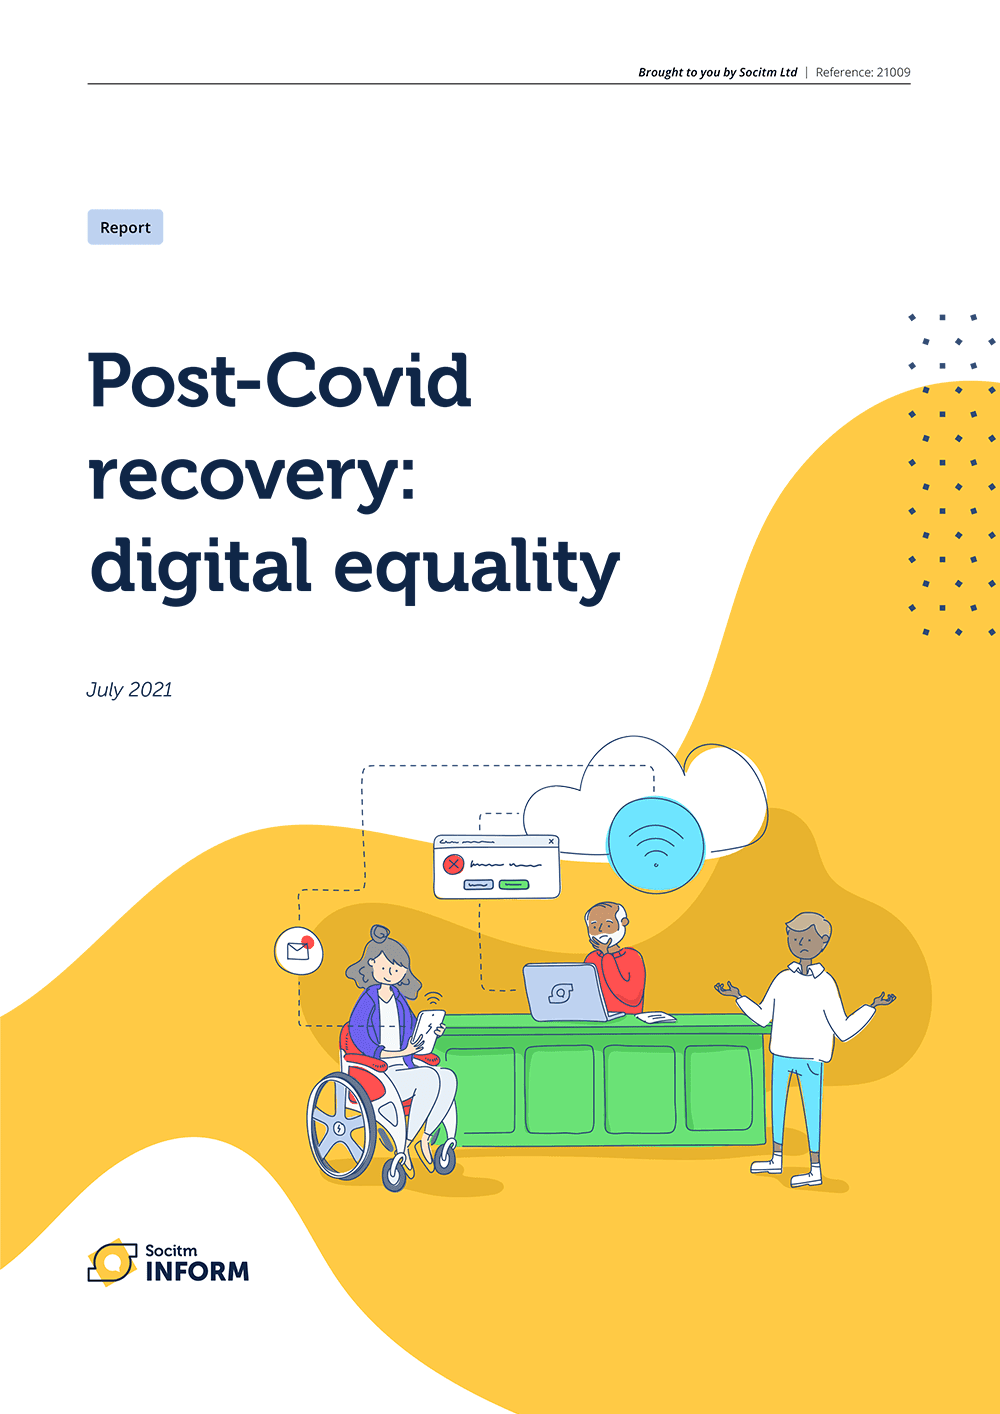 Post-Covid recovery: digital equality